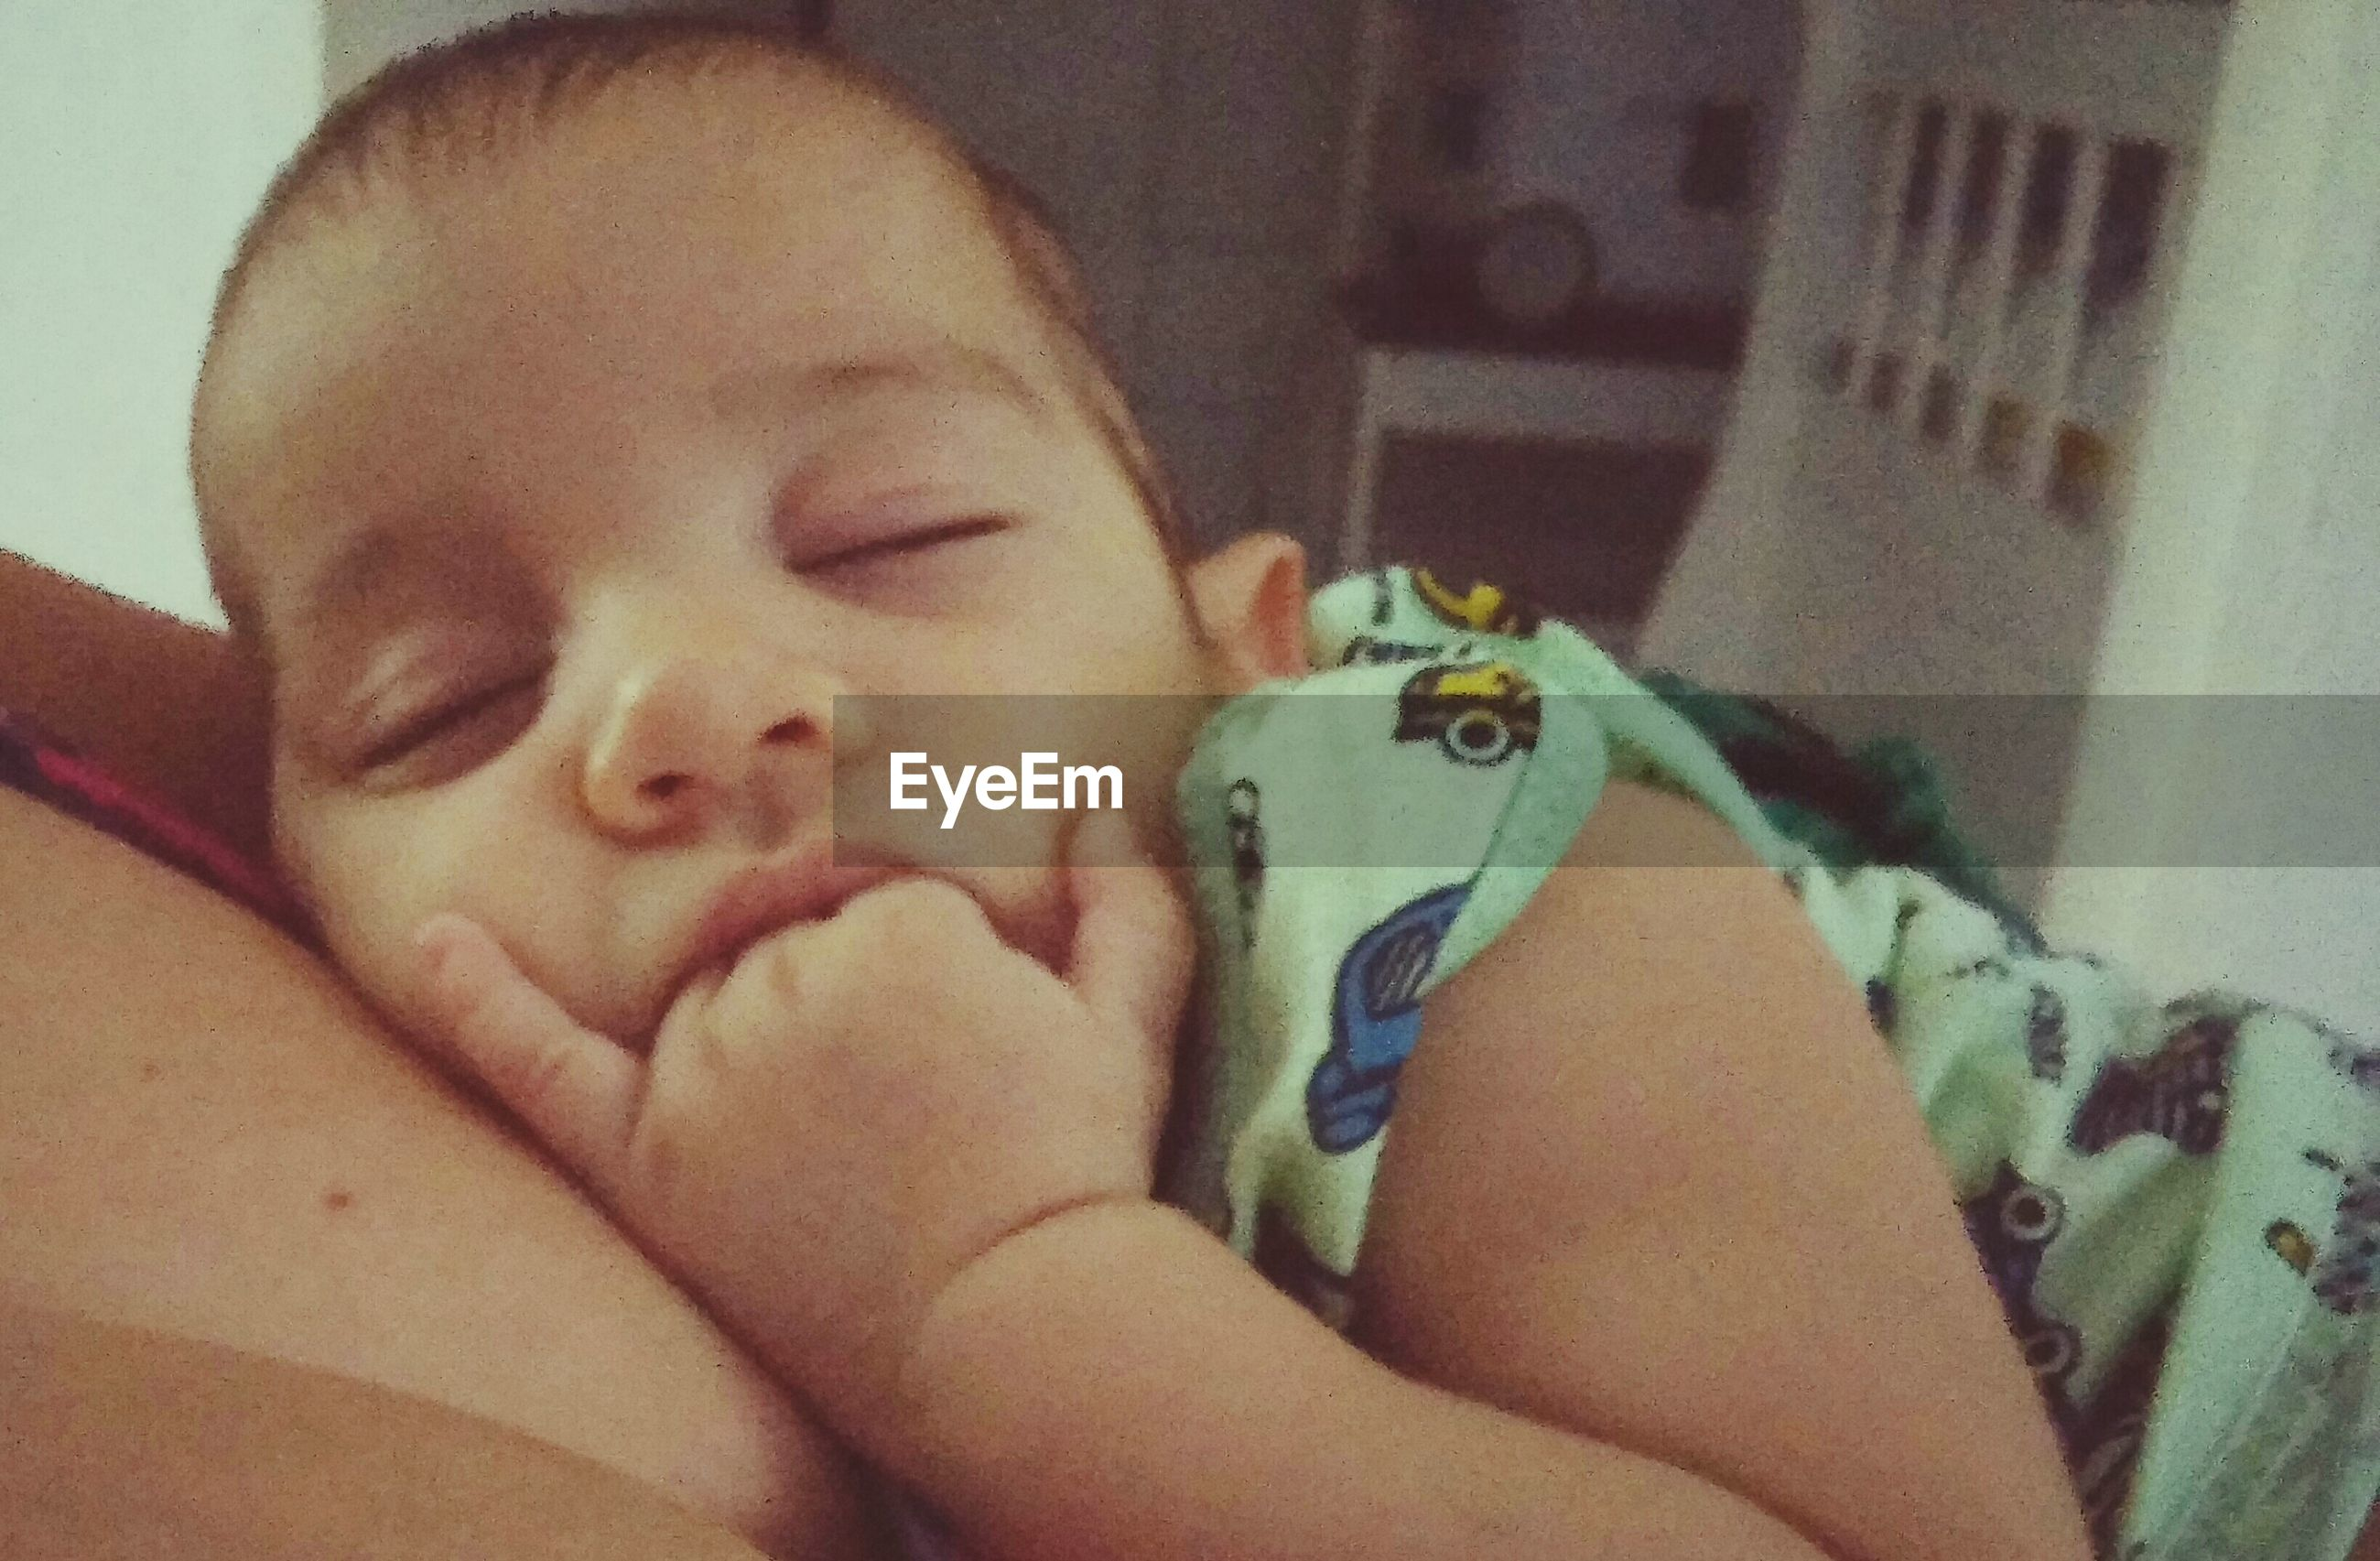 indoors, childhood, bed, innocence, person, cute, babyhood, baby, relaxation, home interior, toddler, lying down, elementary age, lifestyles, sleeping, boys, portrait, looking at camera